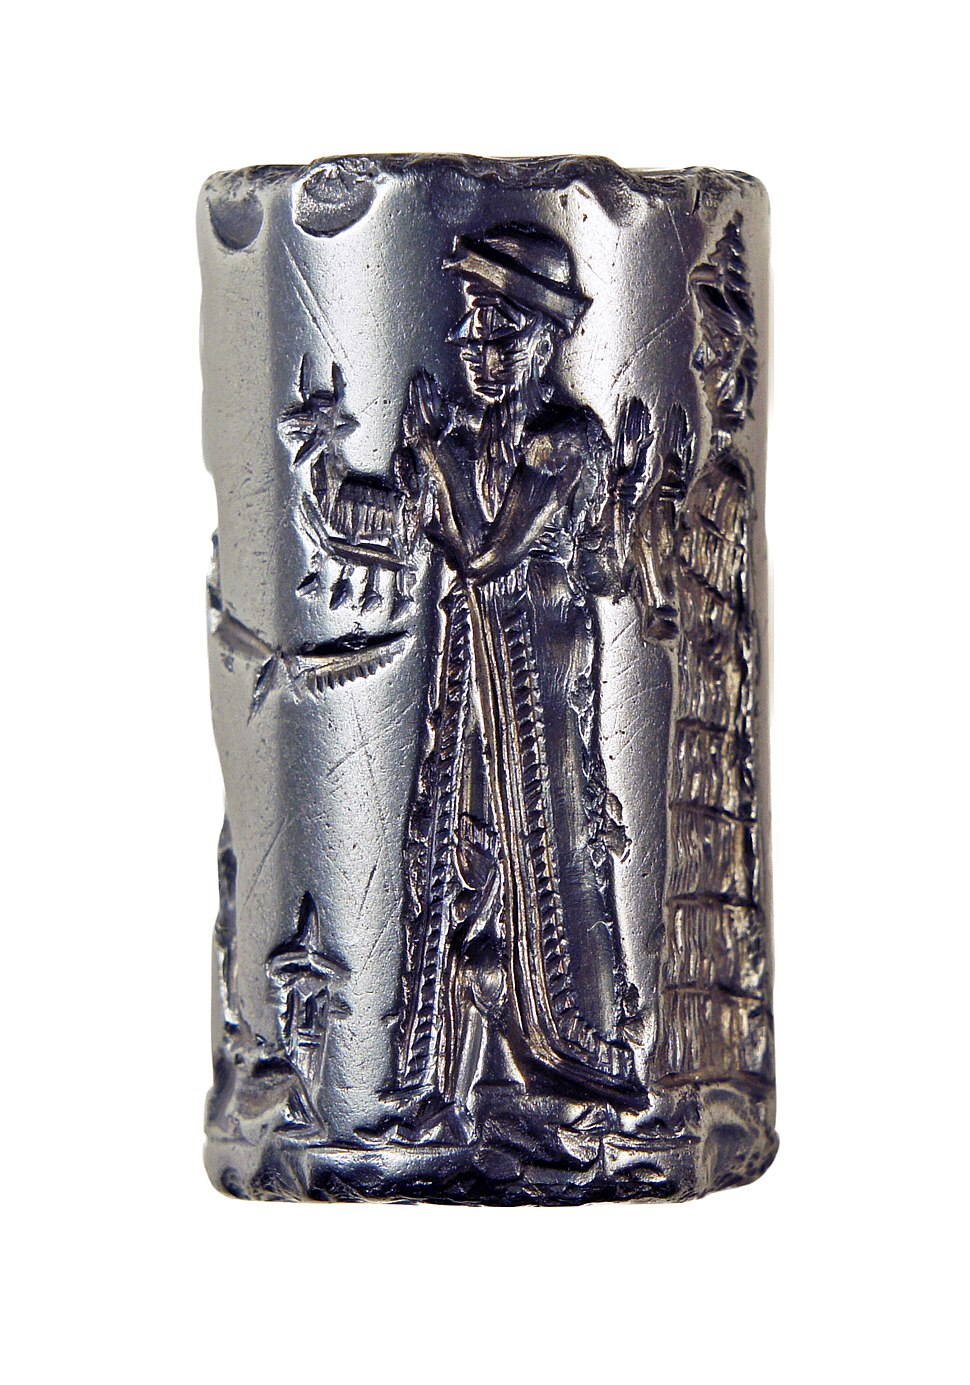 Cylinder Seal, Old Babylonian, formerly in the Charterhouse Collection 03